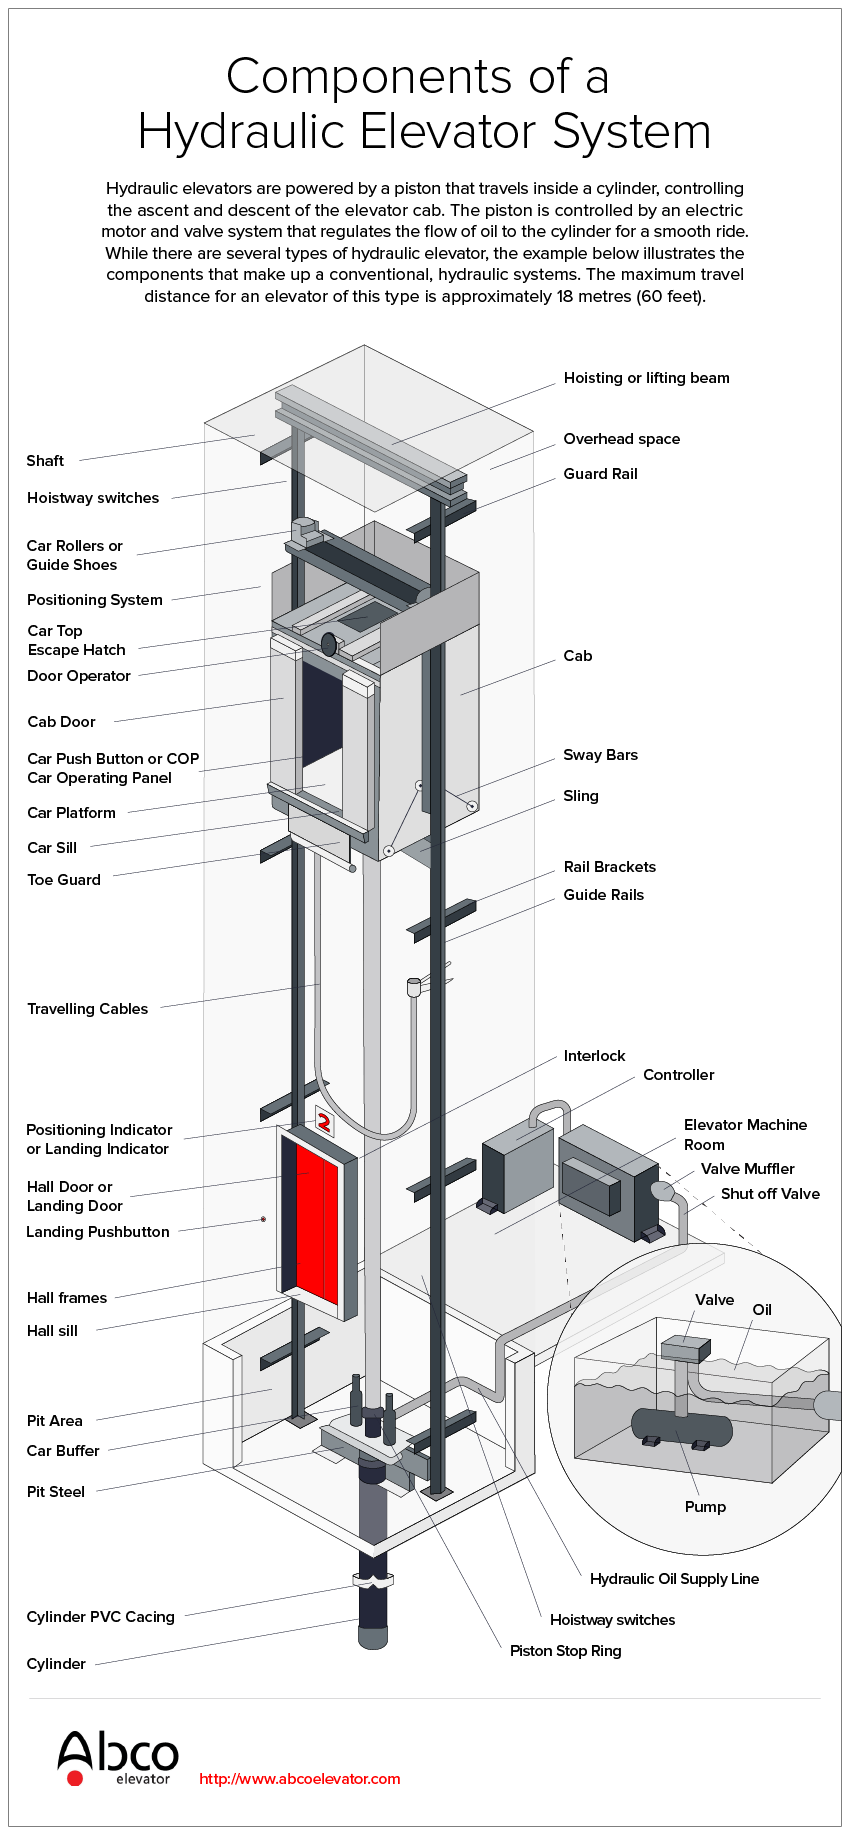 Elevator Components Diagram Electrical Wiring Diagrams Schematic Hydraulic Elevators 101 Abco